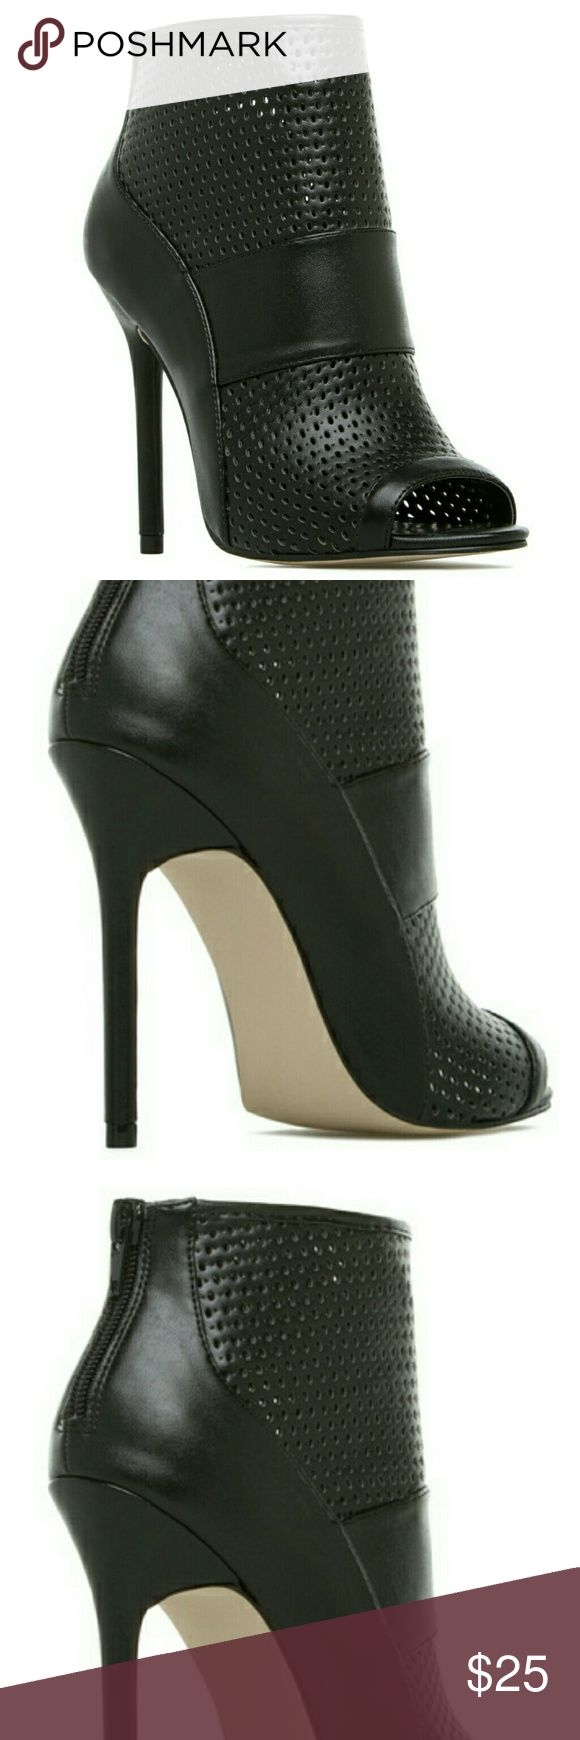 New open toe black booties Amelia Izabella Rue perforated open toe booties Shoe Dazzle Shoes Ankle Boots & Booties